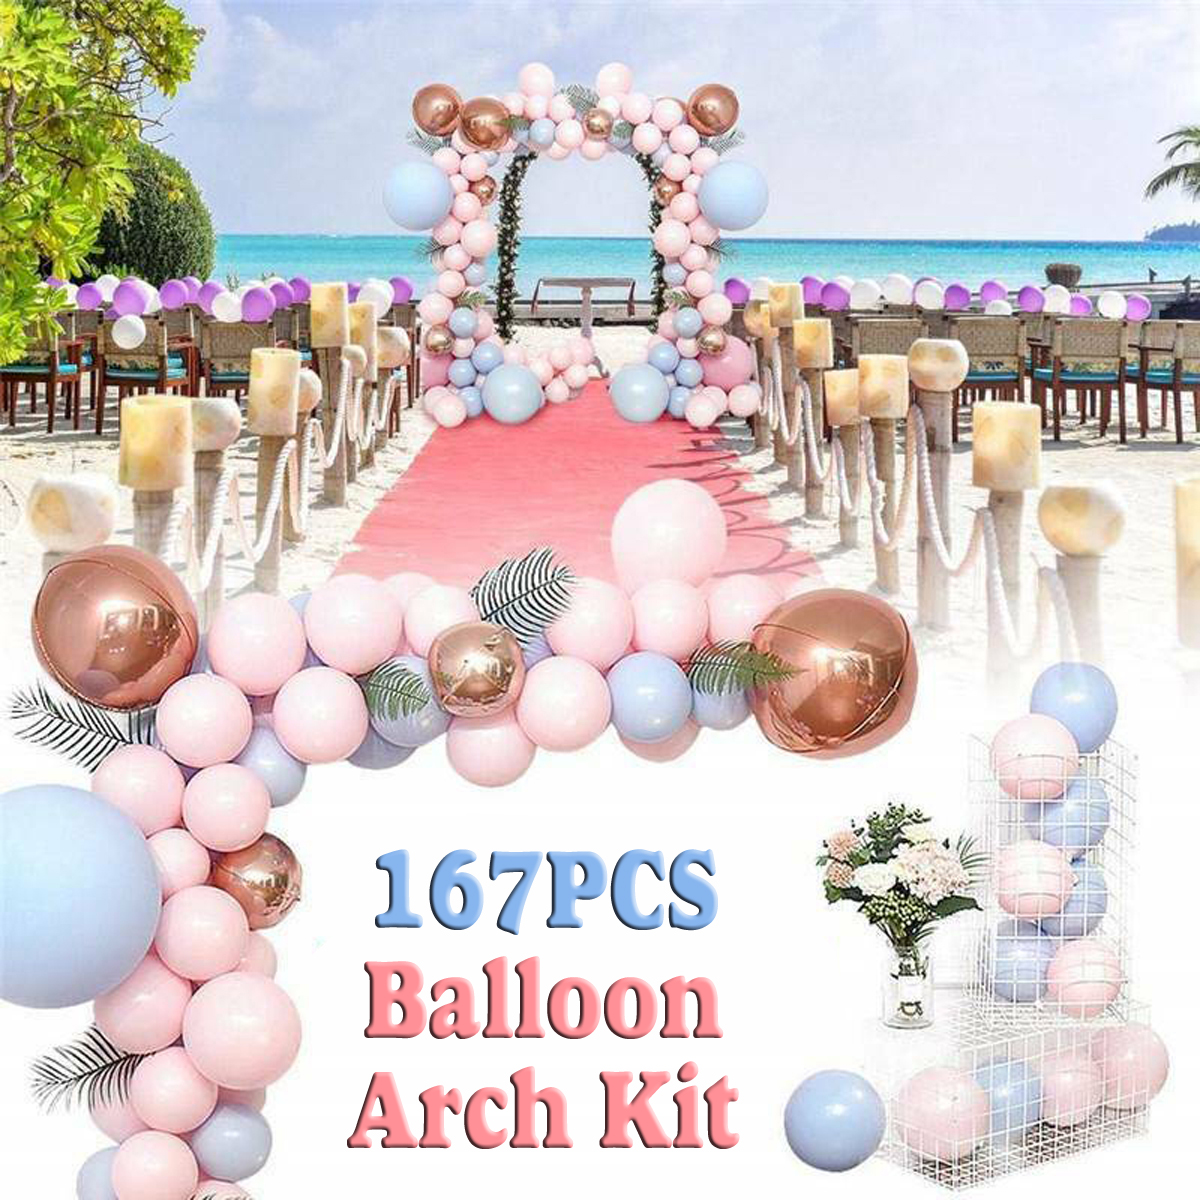 167pcs Set Macaron Balloon Arch Kit 5 18 Pink Blue Balloons Garland Kit For Wedding Birthday Party Decoration Event With 5m Chain Link Walmart Canada